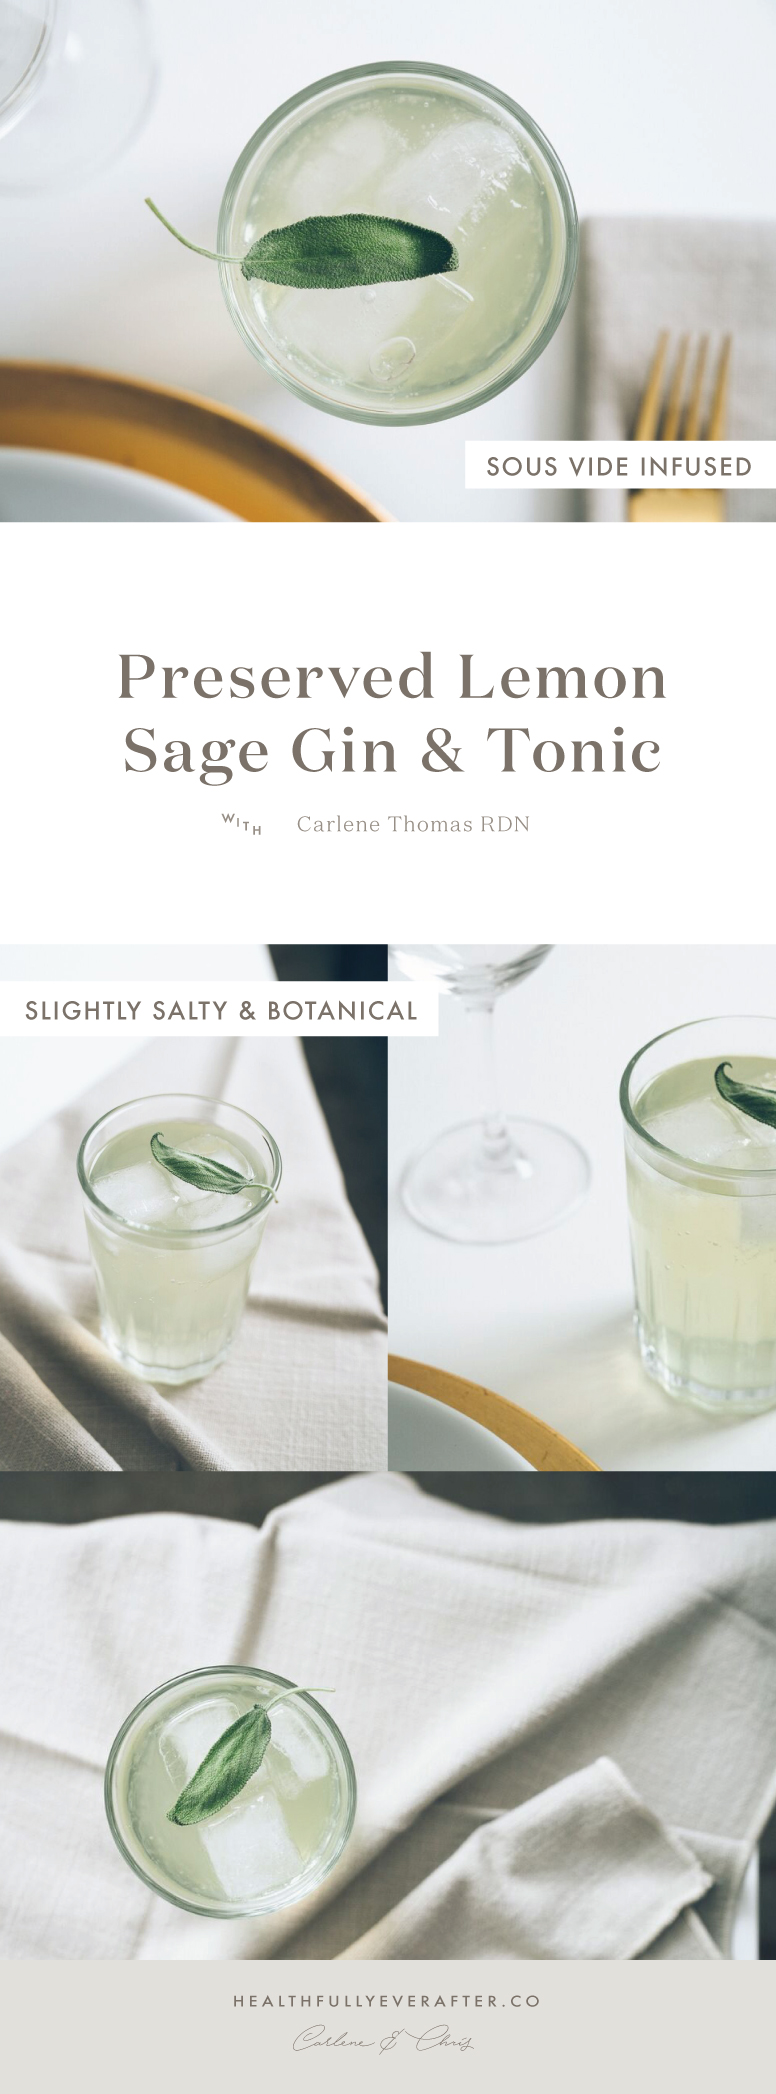 sage gin and tonic cocktail with preserved lemon